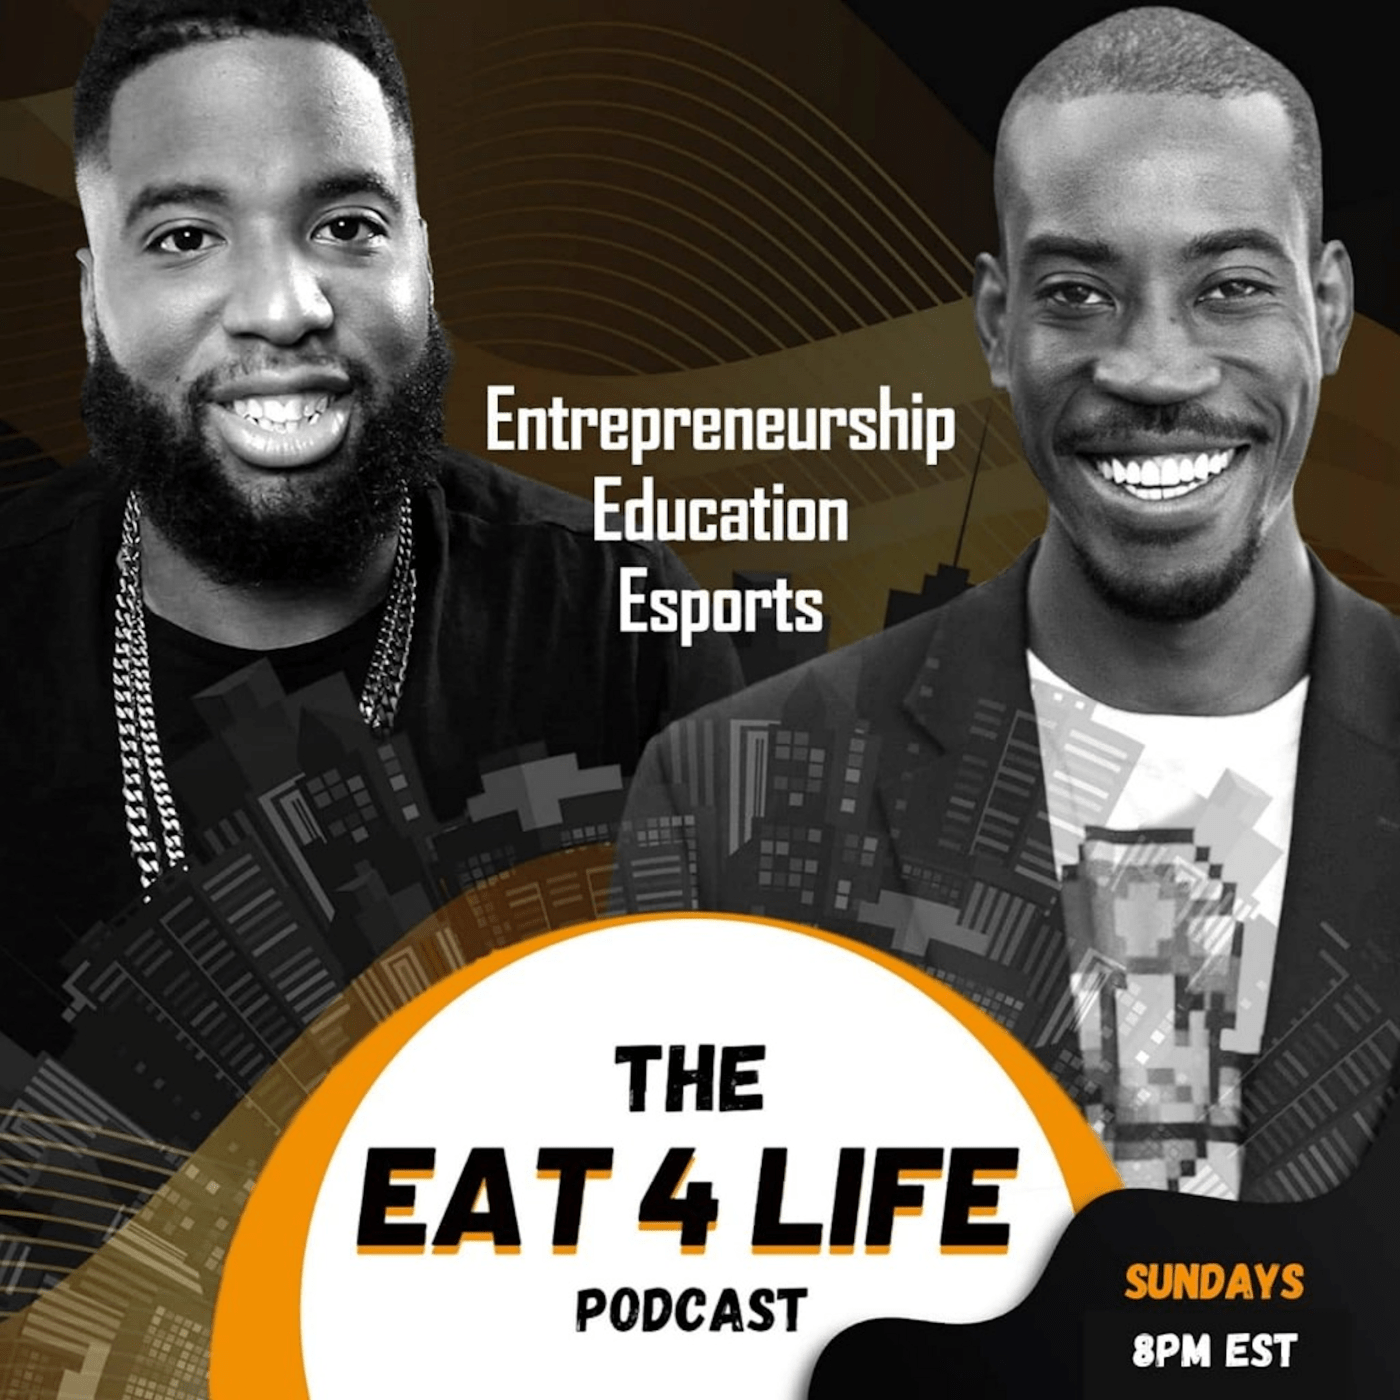 Eat 4 Life Podcast